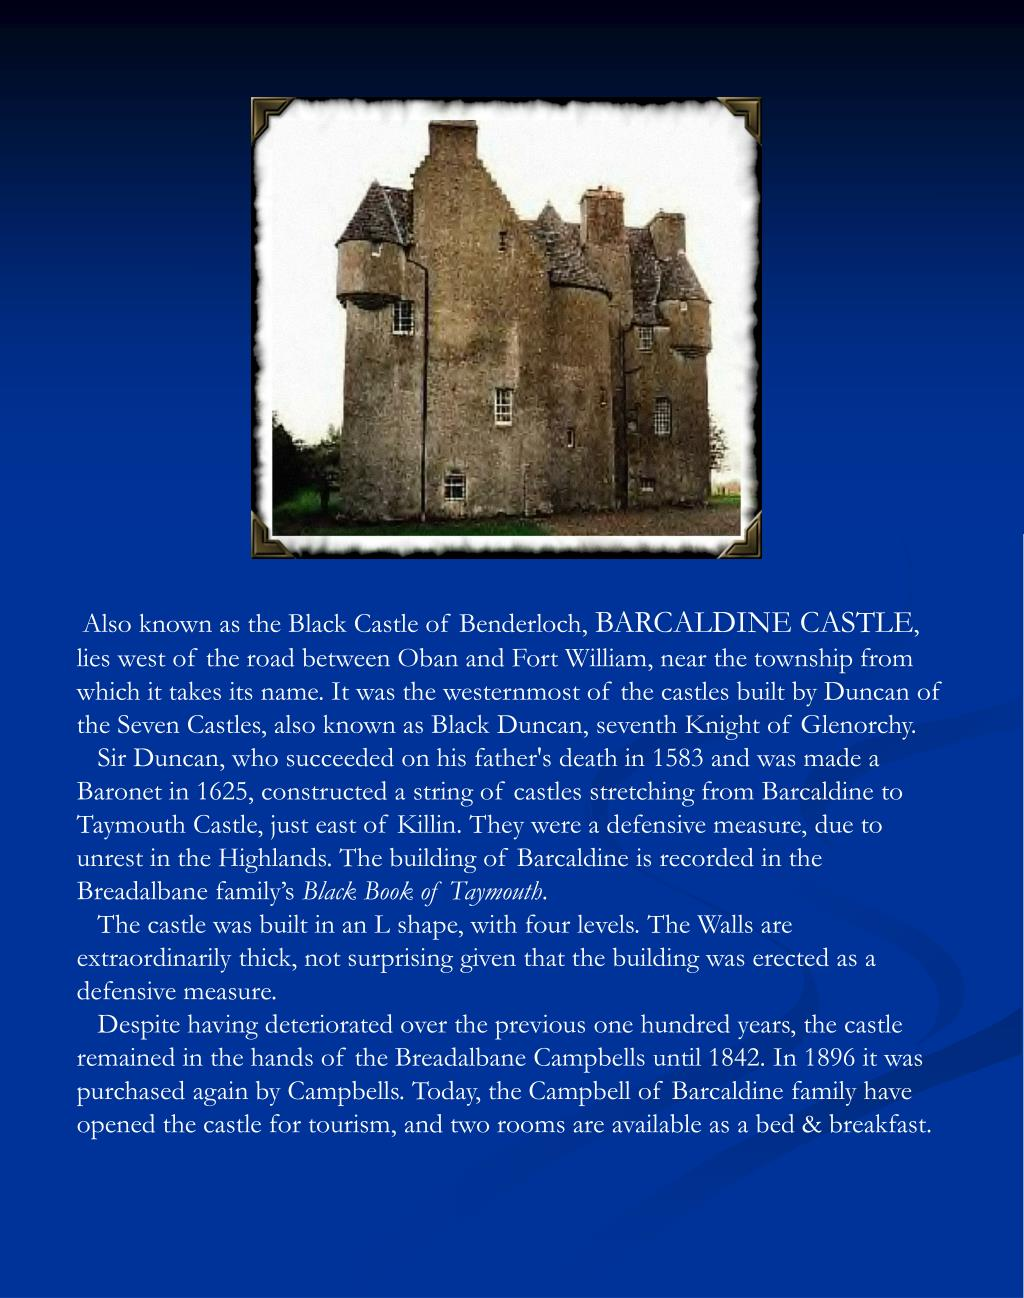 Also known as the Black Castle of Benderloch,